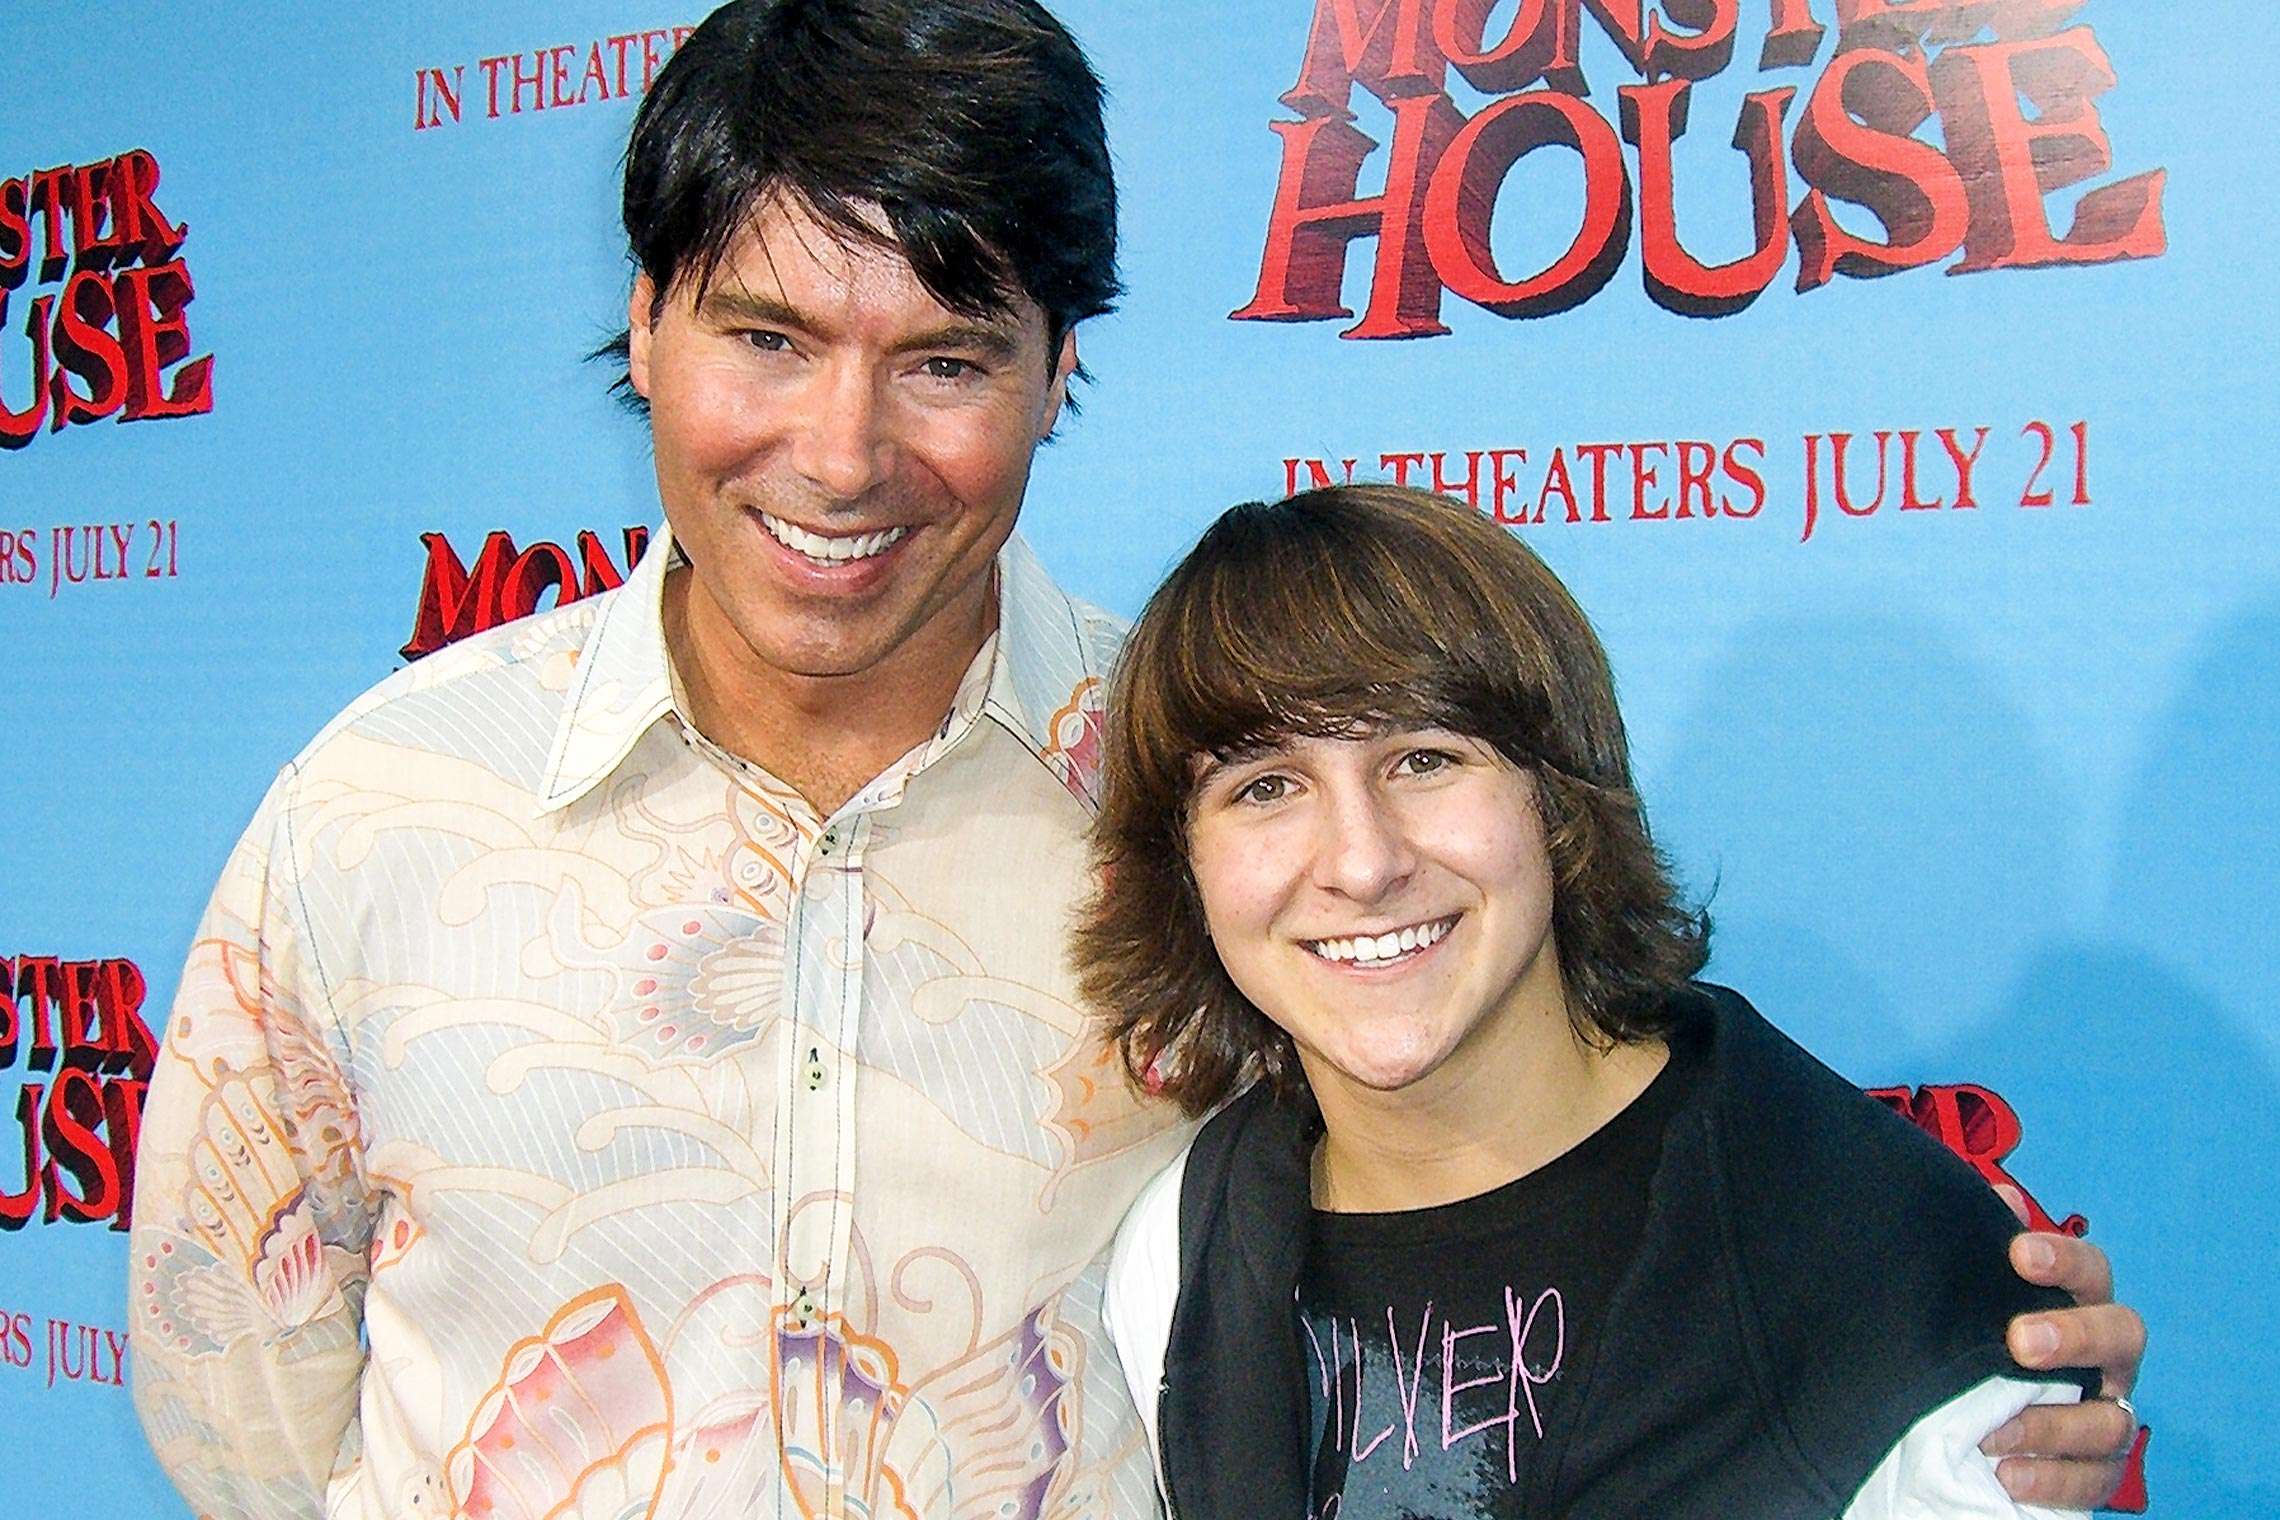 On the red carpet with Mitchel Musso at the premiere of <em>Monster House</em> in L.A.